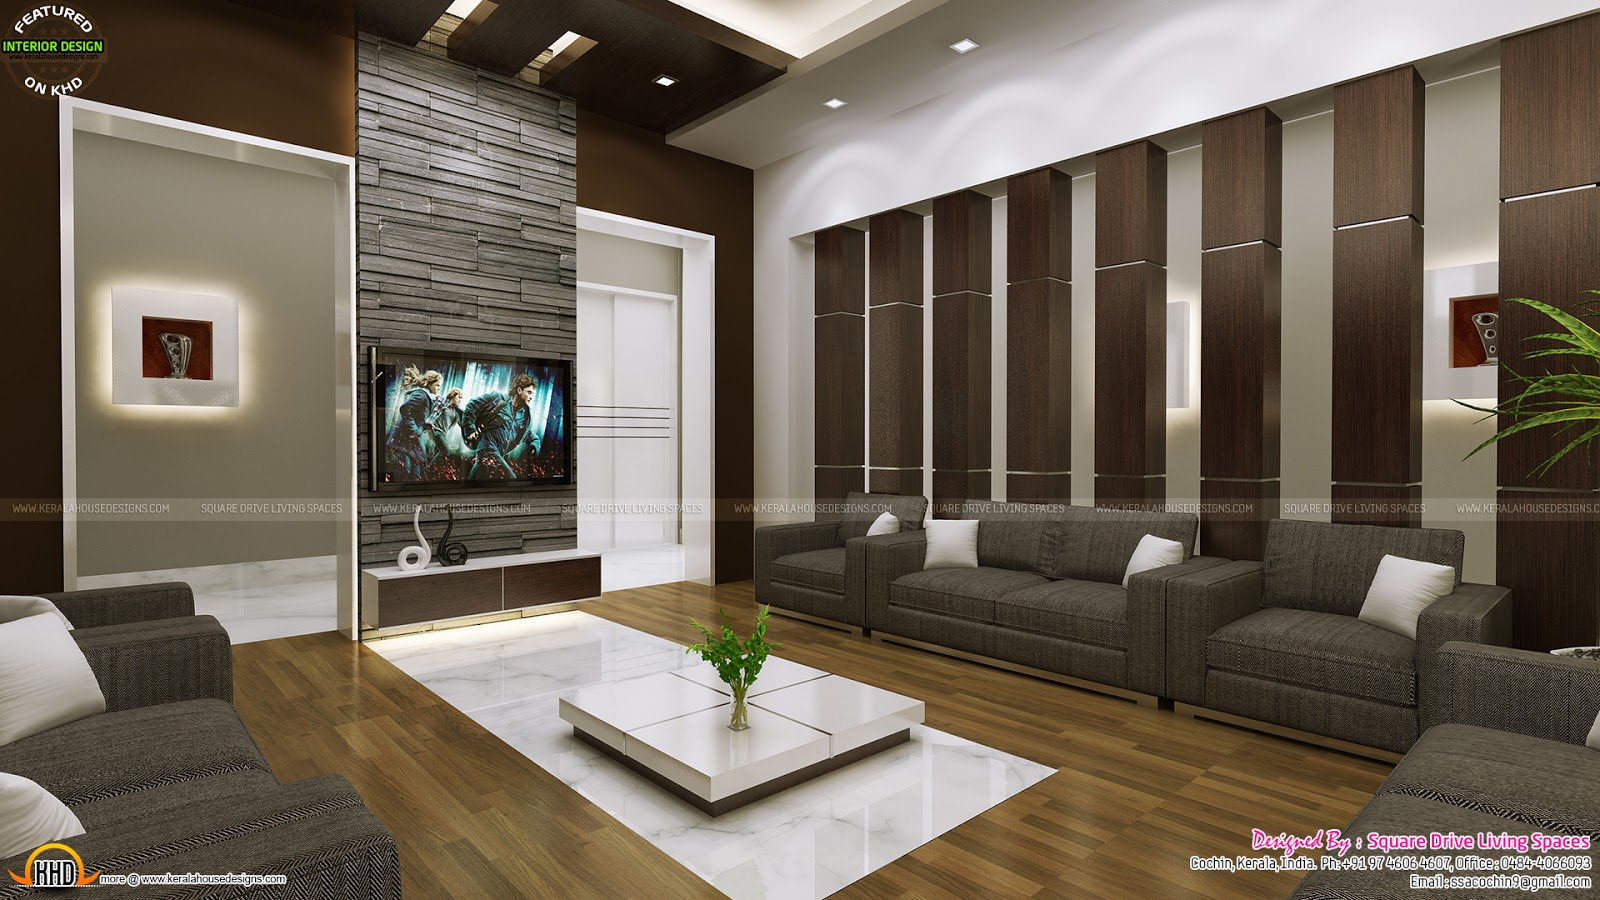 Attractive home interior ideas kerala home design and Images of home interior